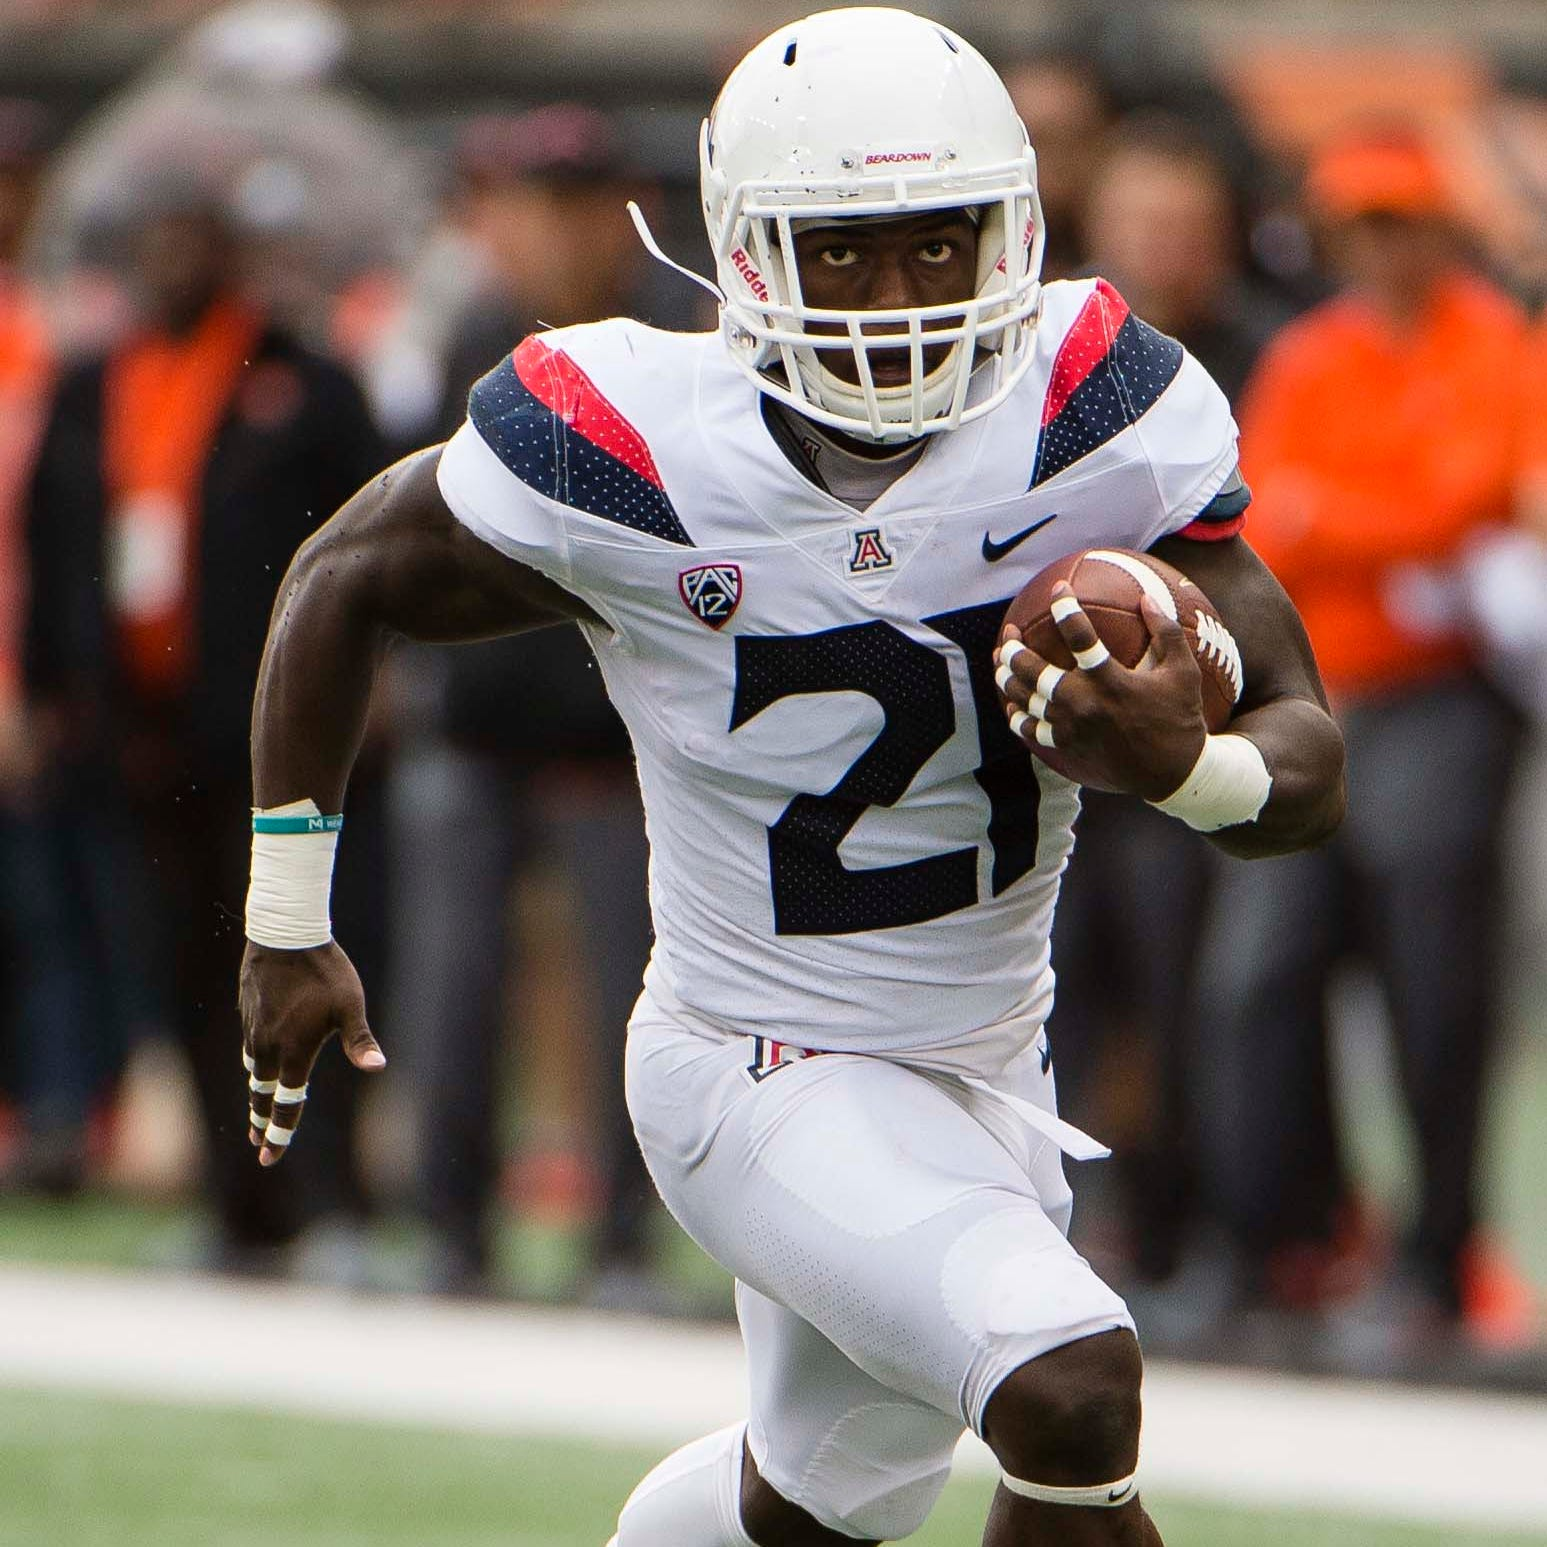 Arizona Wildcats discover running game, pound Oregon State